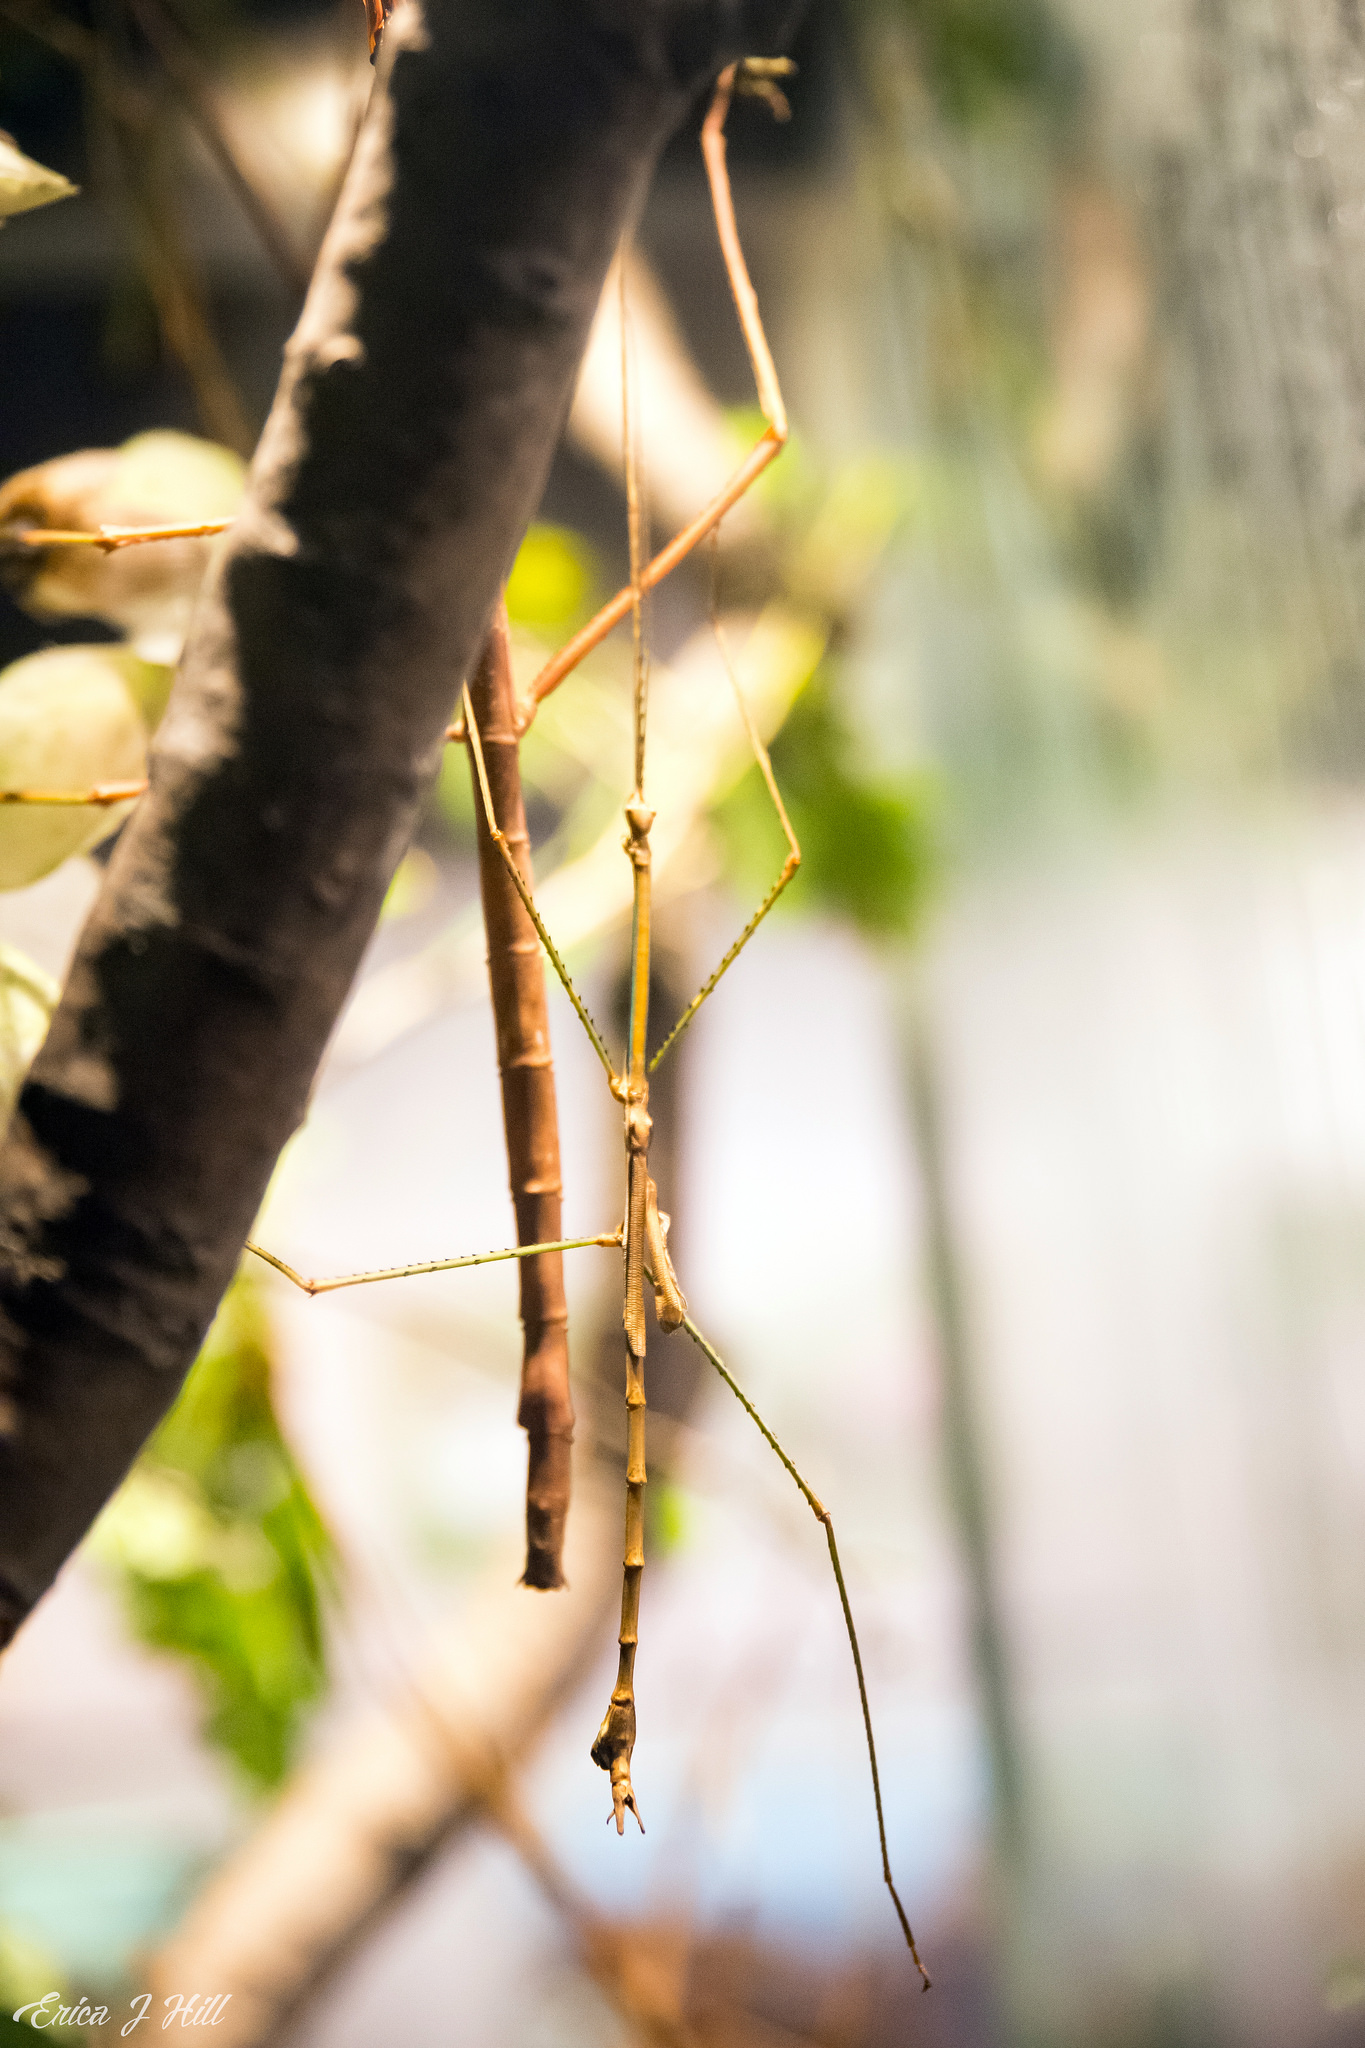 Stick Insect hanging from branch